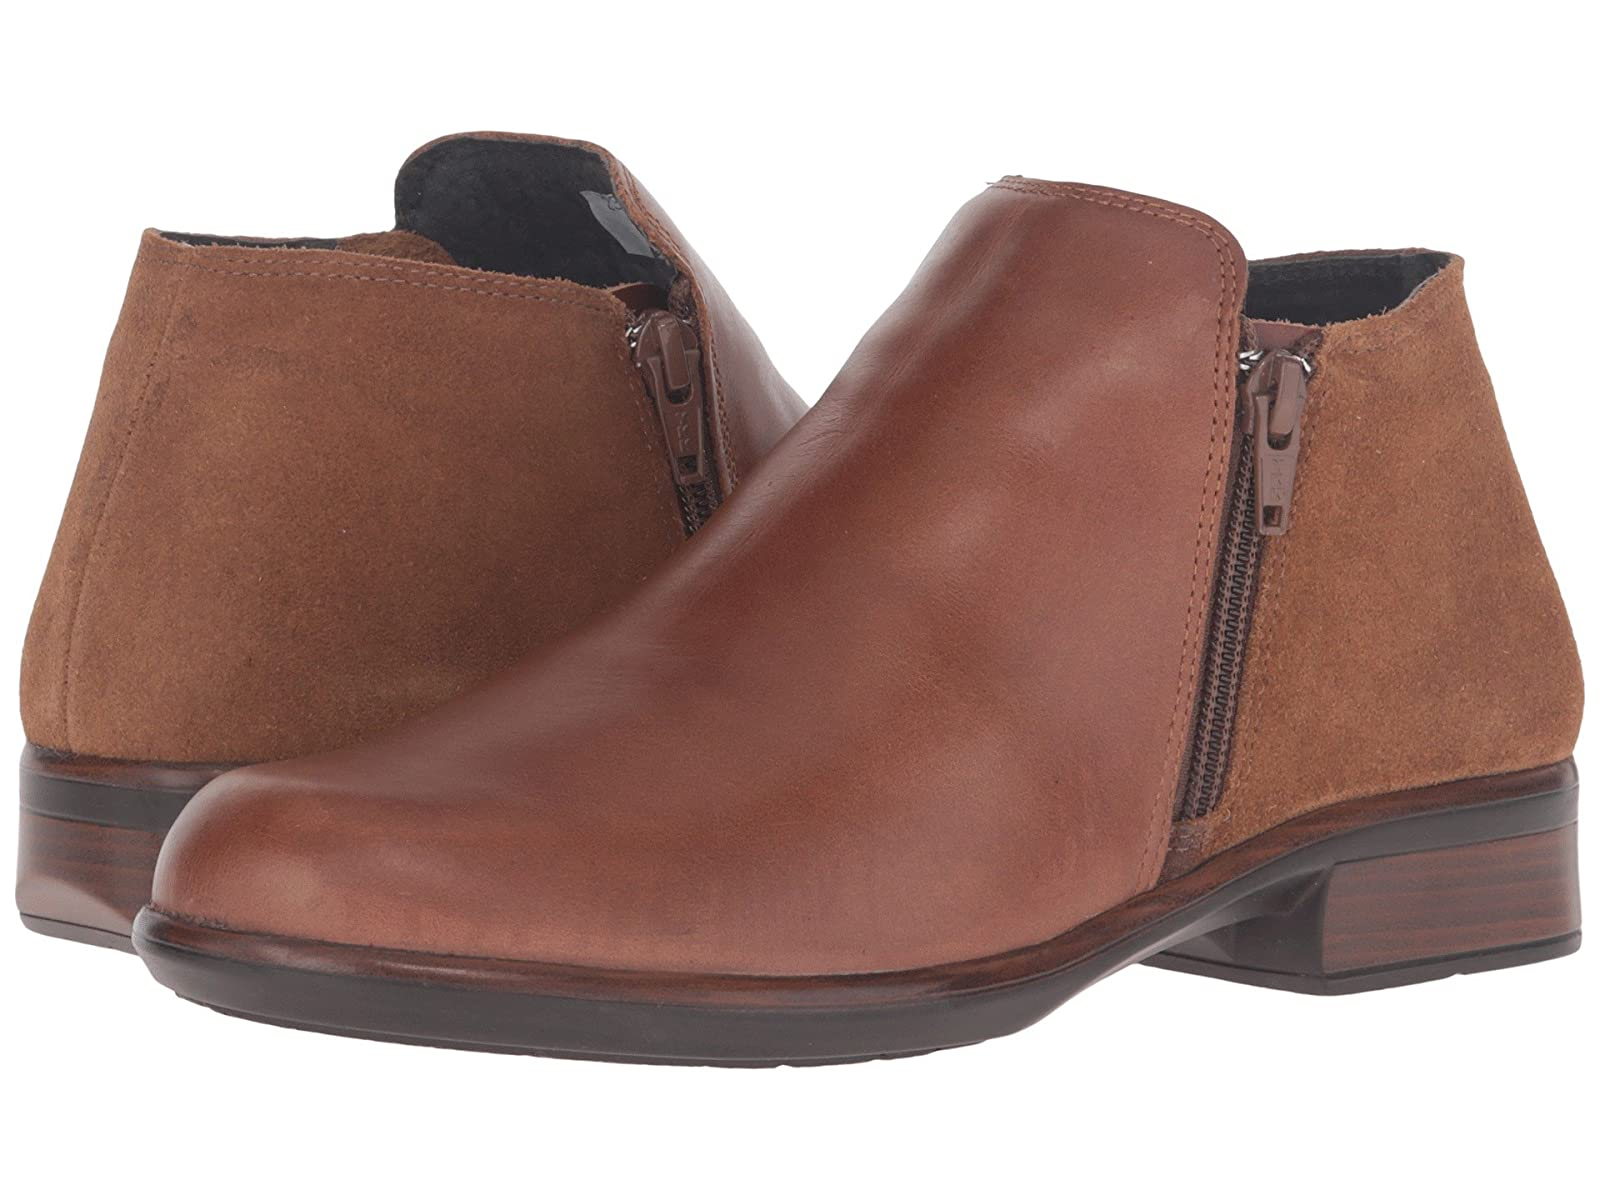 Naot HelmEconomical and quality shoes